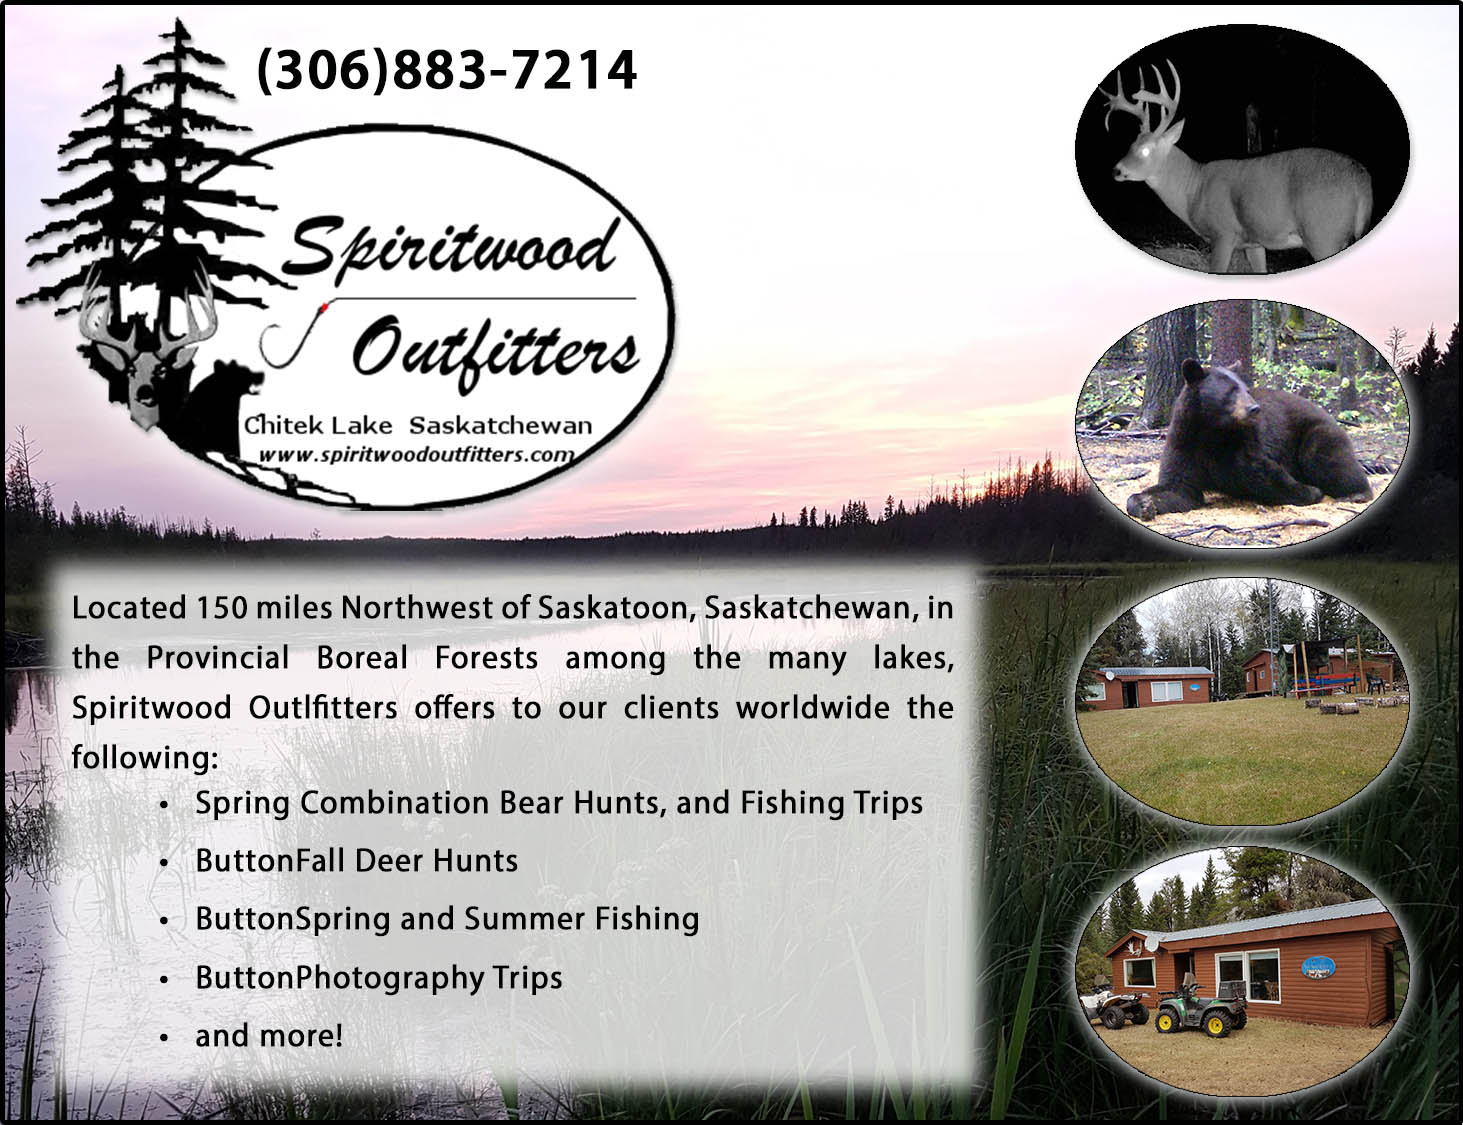 Spiritwood Outfitters